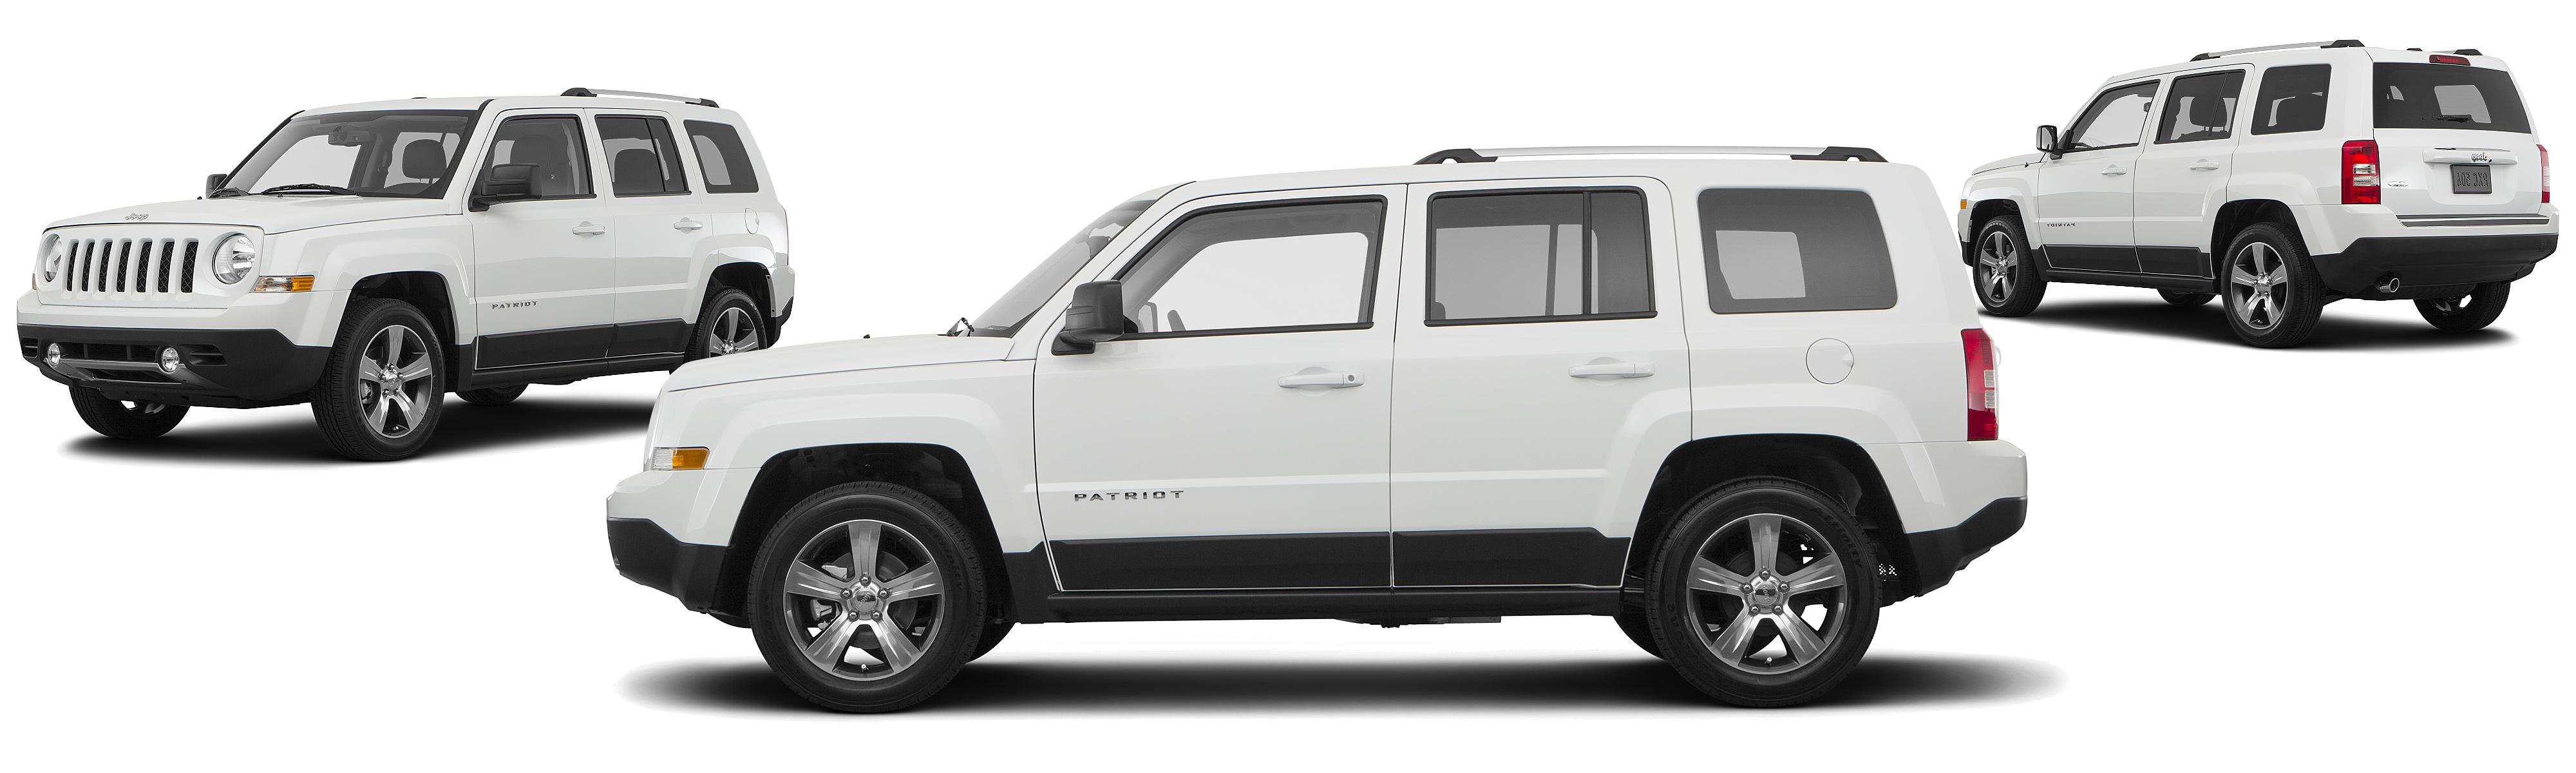 2017 jeep patriot latitude 4dr suv research groovecar rh groovecar com